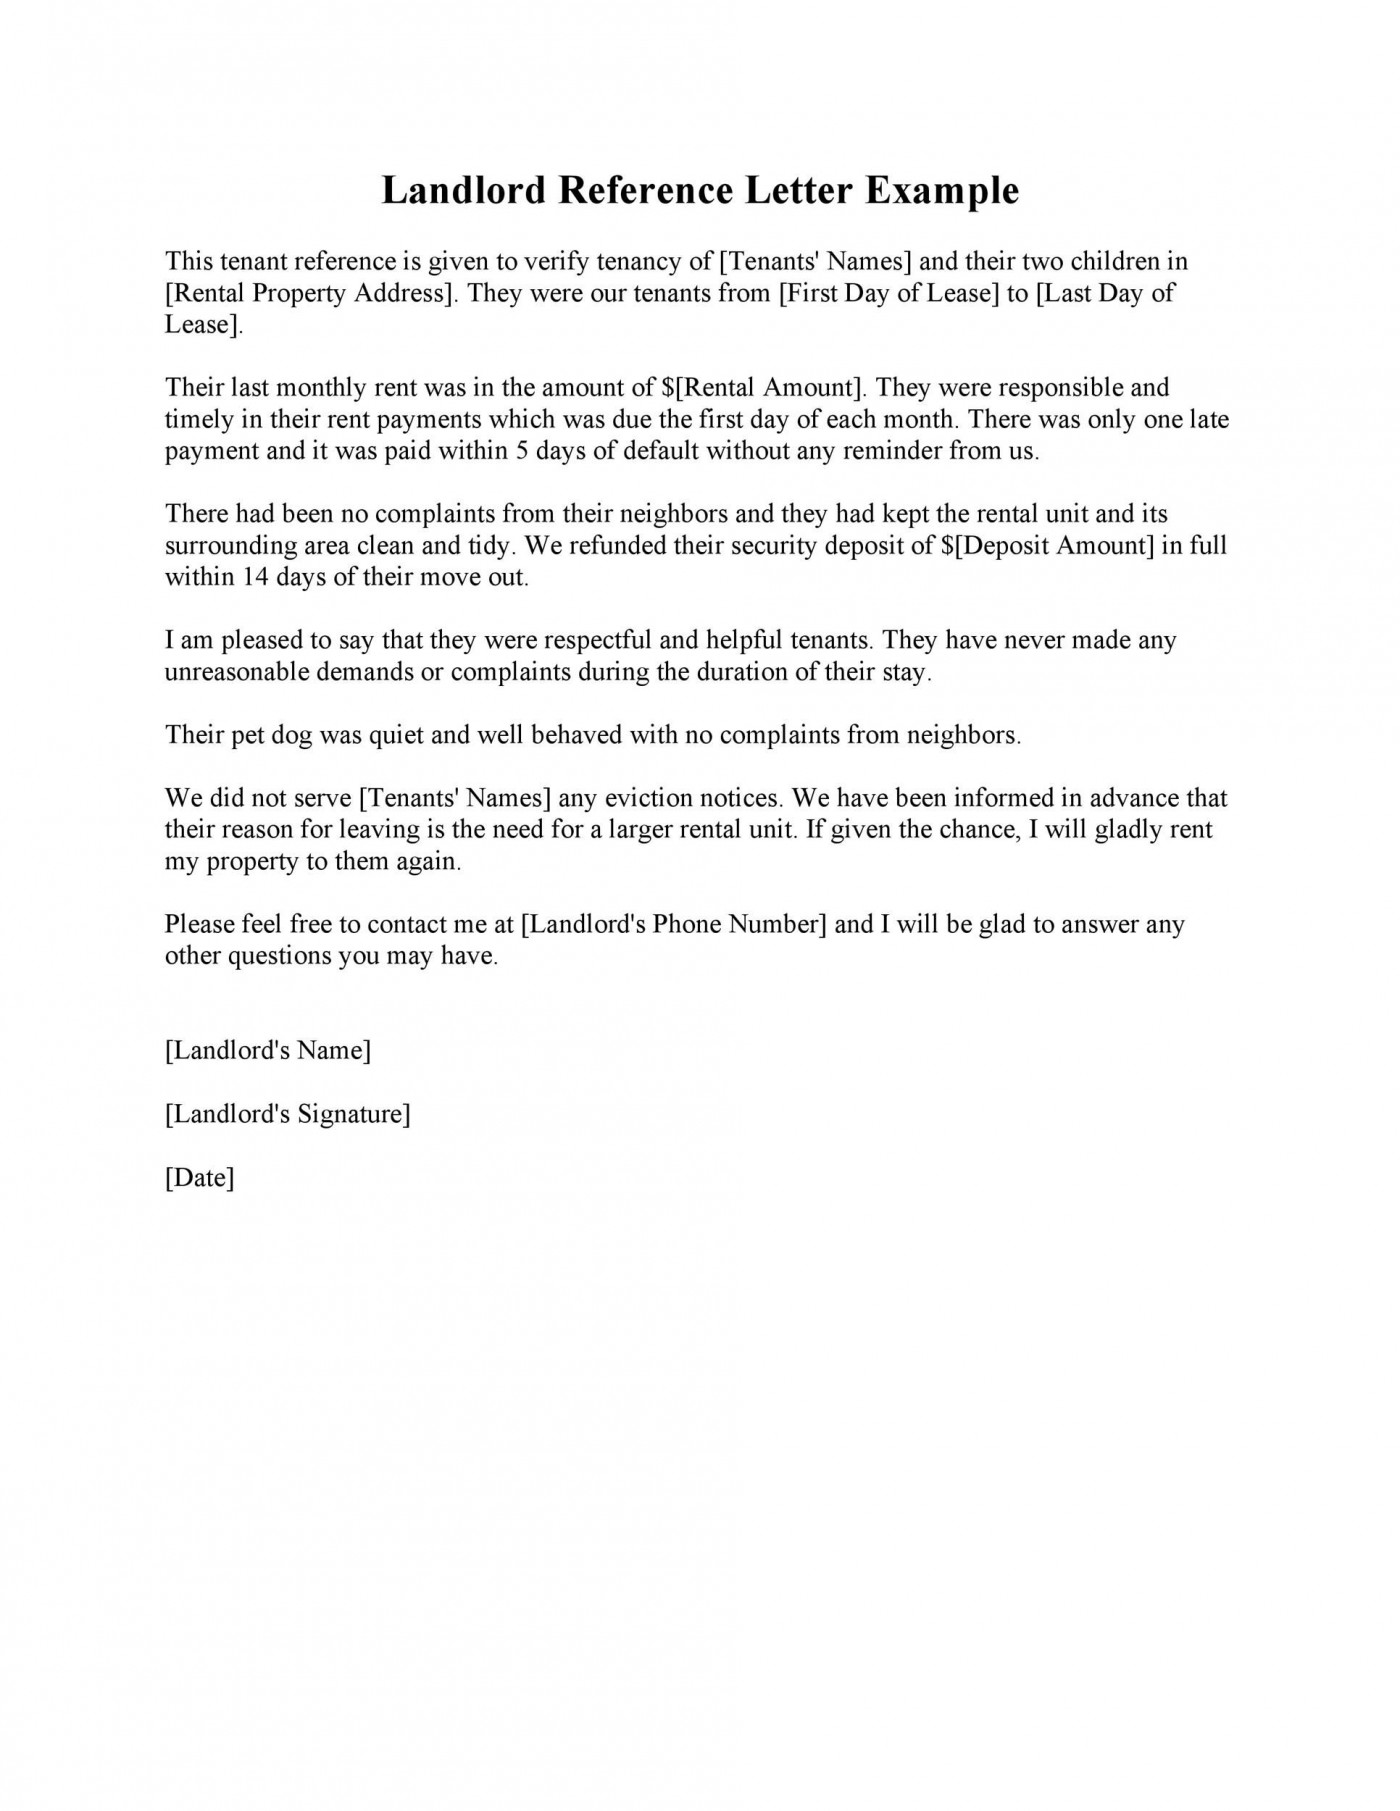 003 Best Free Reference Letter Template For Landlord Image  Rental1400